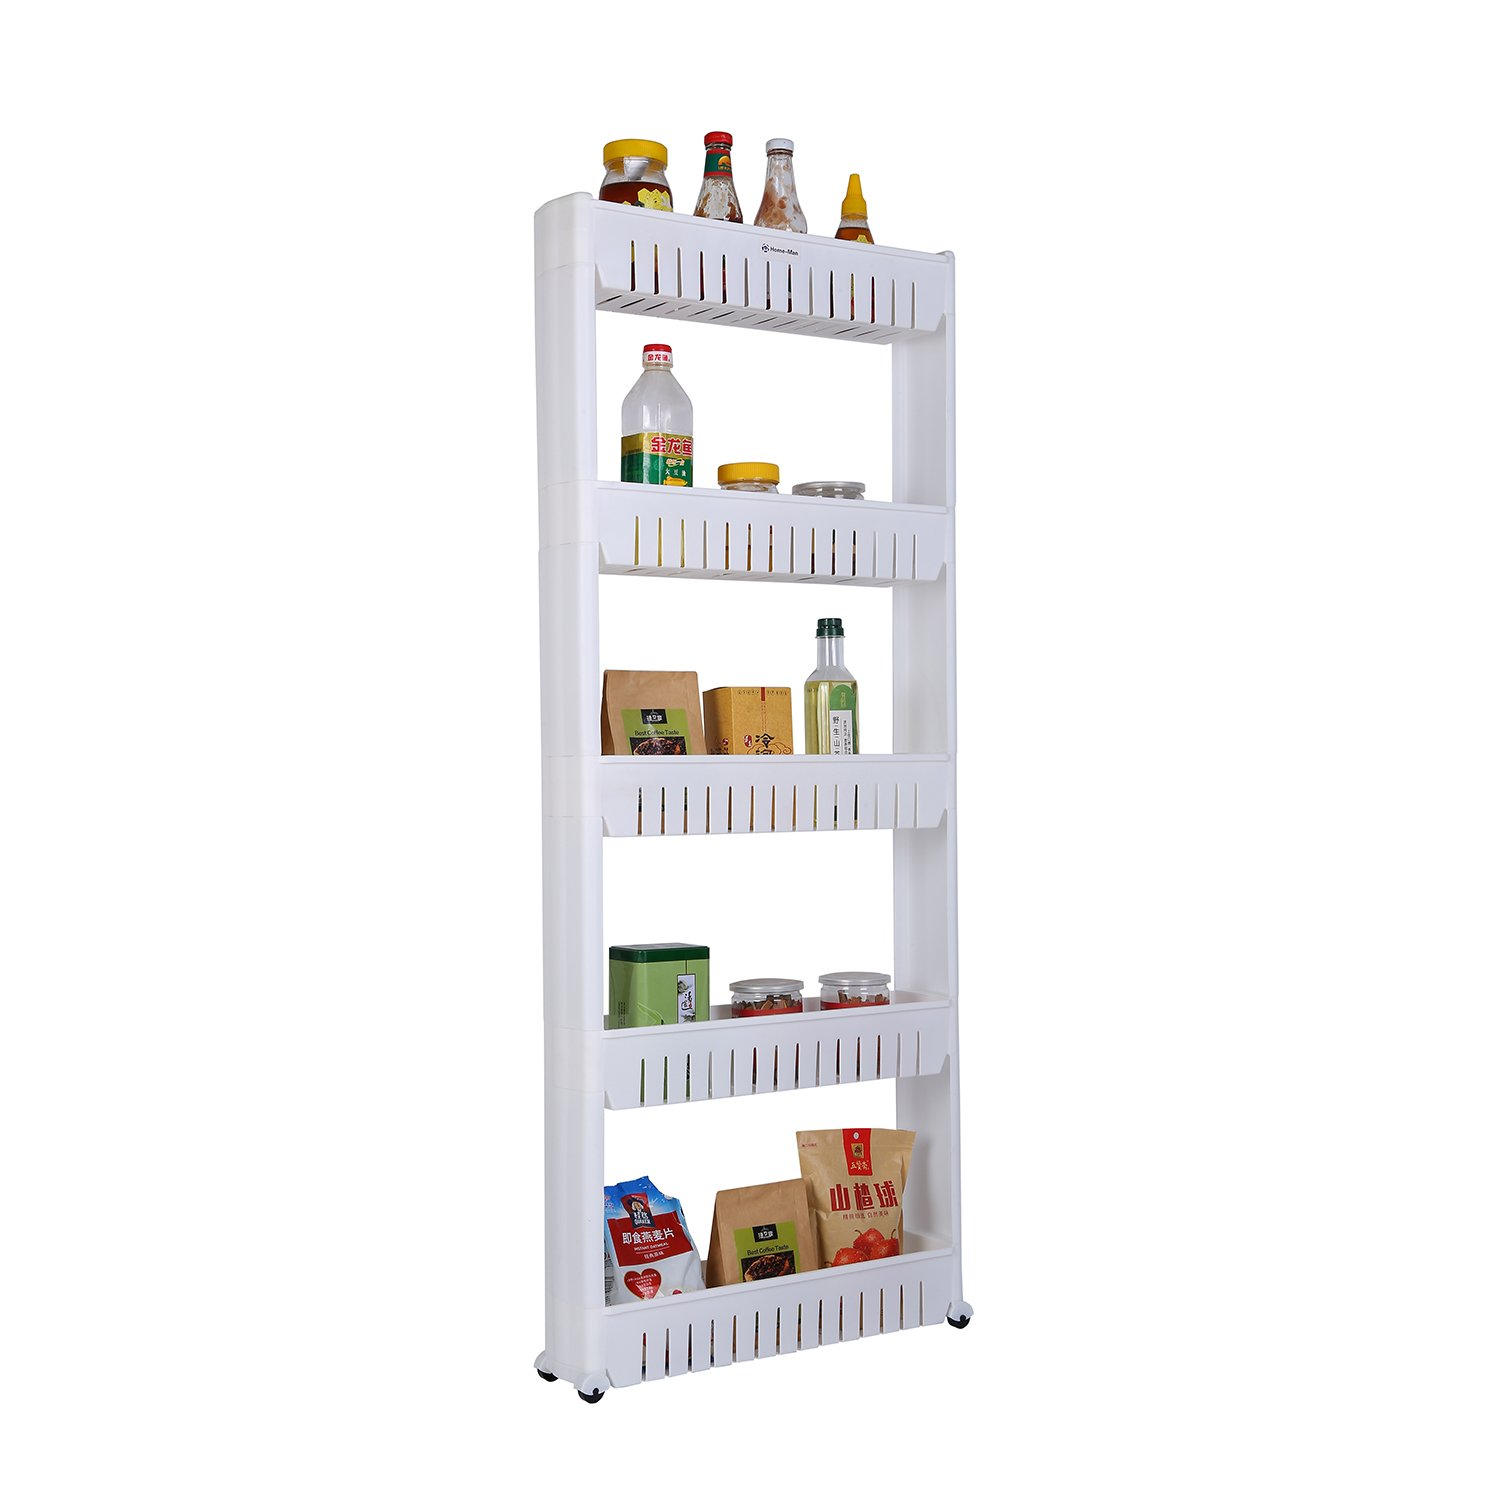 Home-Man Laundry Room Organizer, Mobile Shelving Unit Organizer with 5 Large Storage Baskets, Gap Storage Slim Slide Out Pantry Storage Rack for Narrow Spaces, 5 Tier